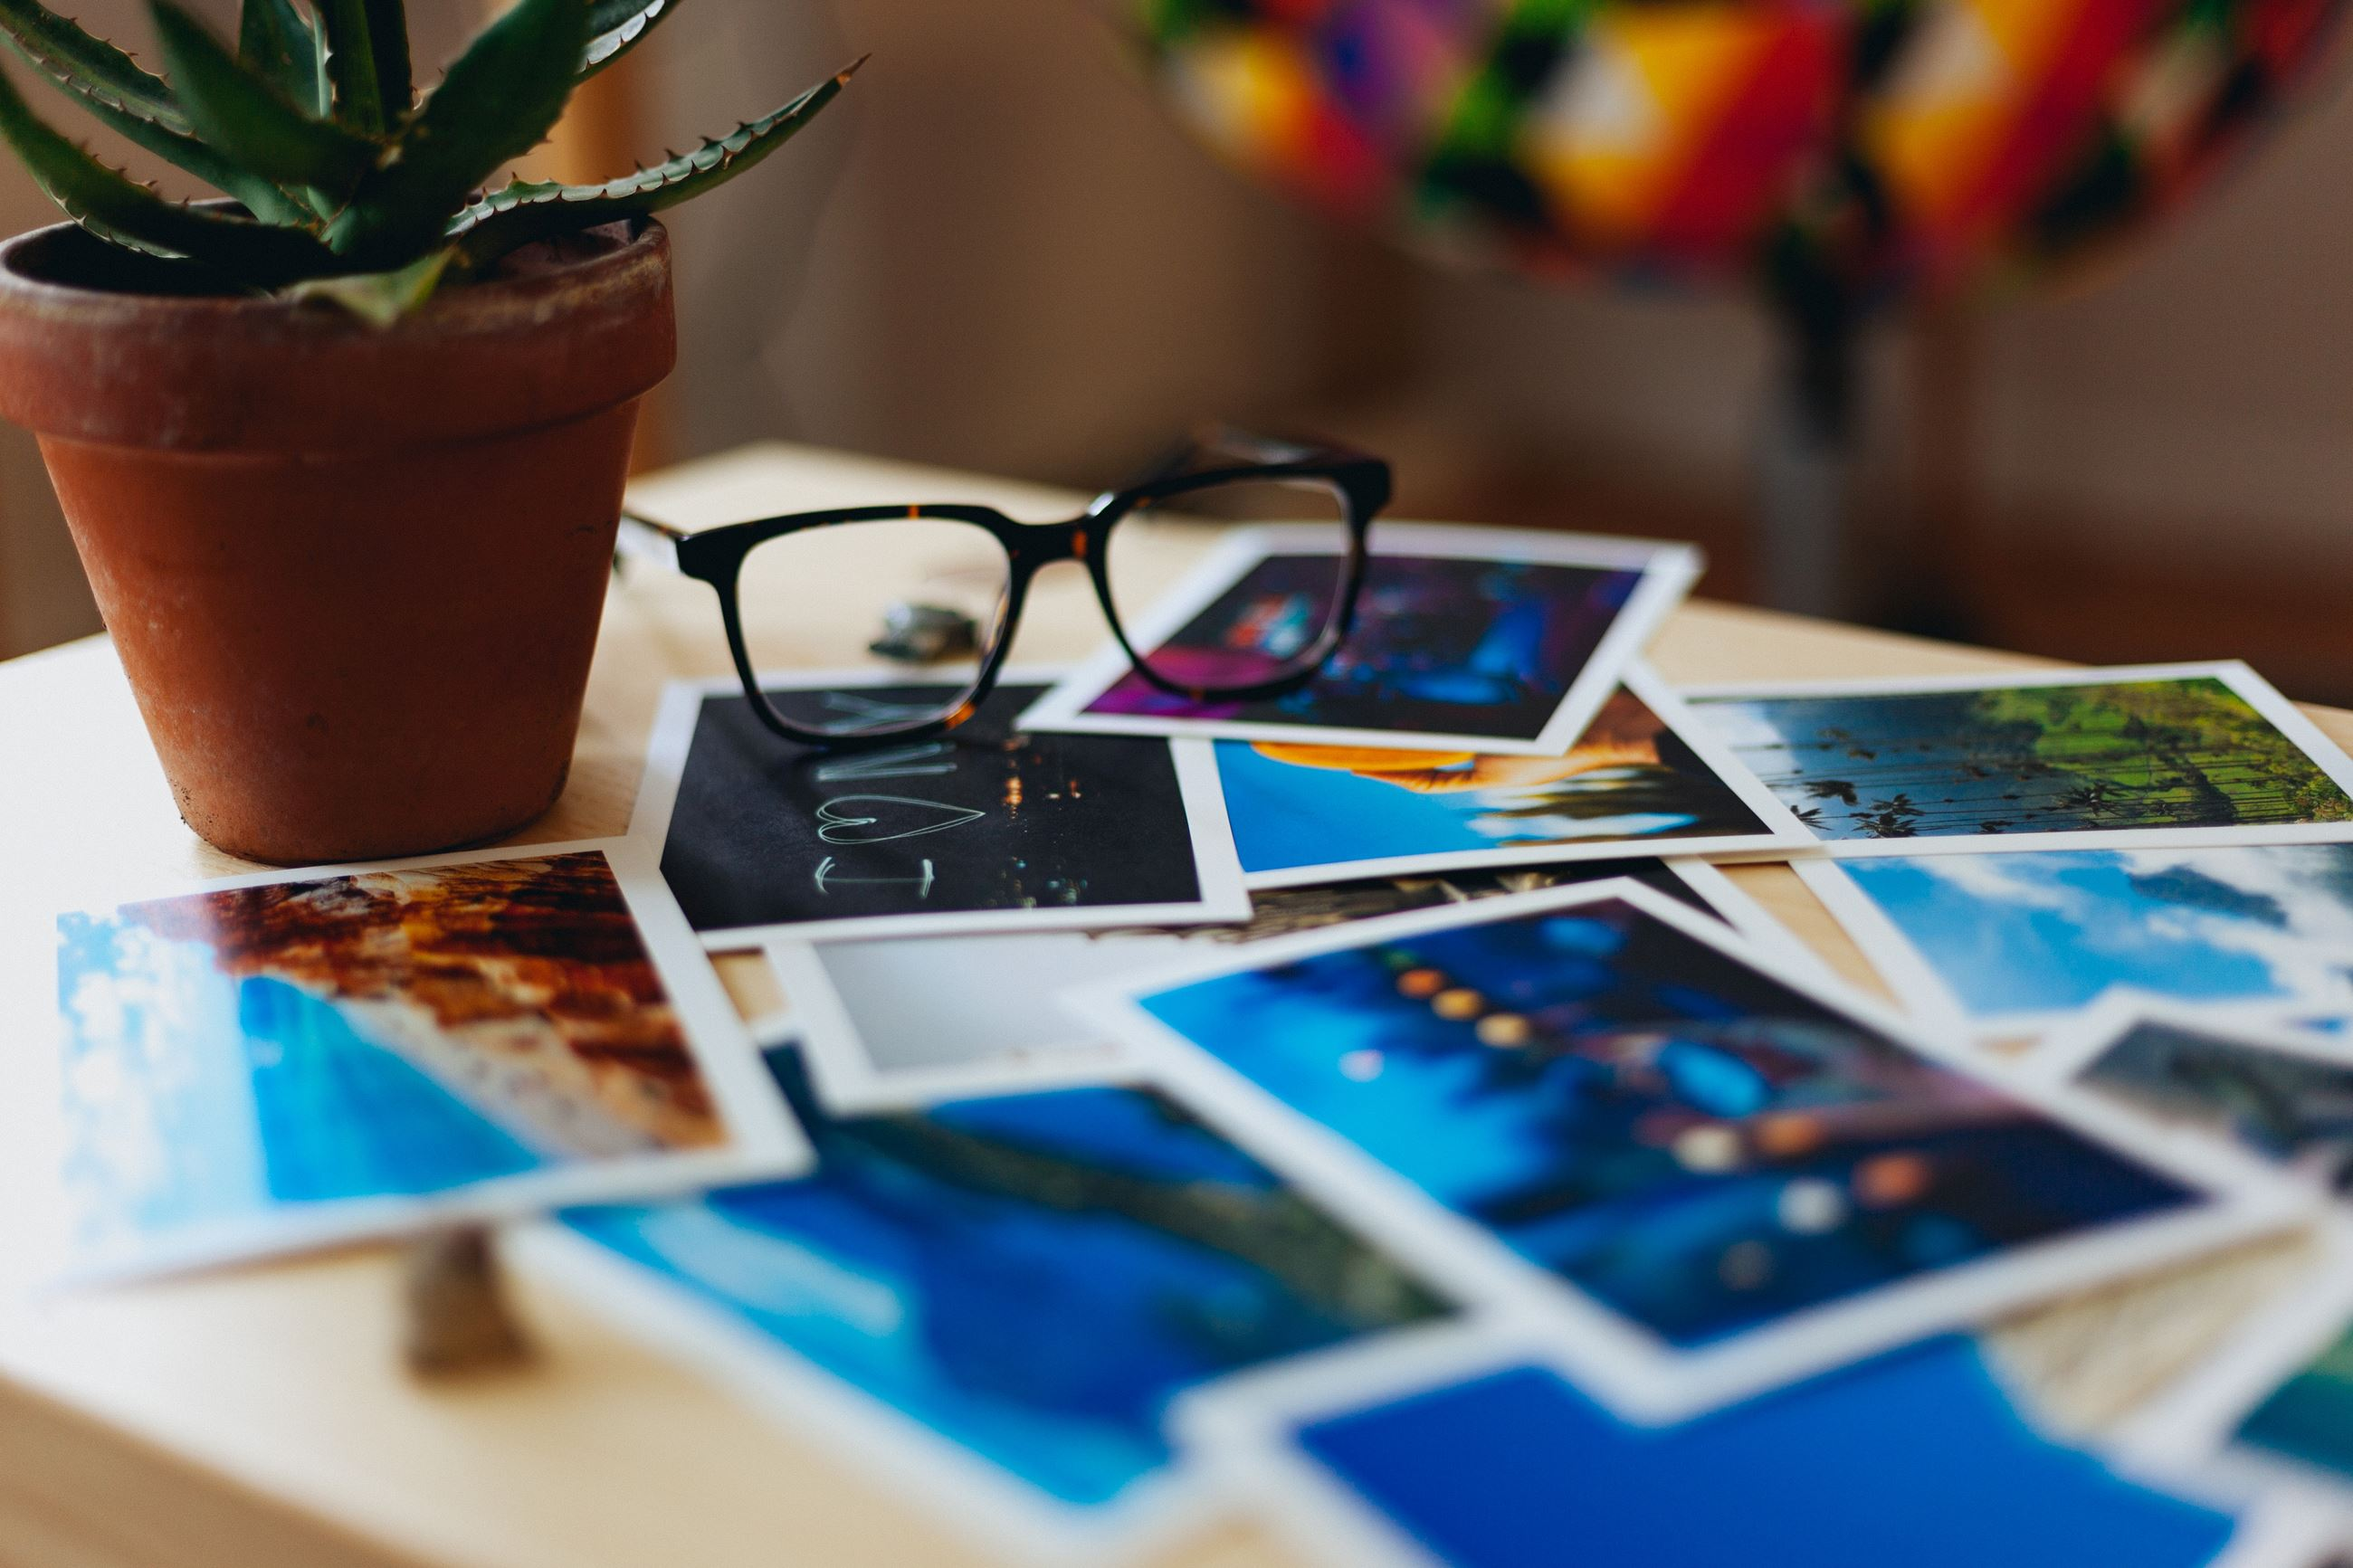 A photograph displaying postcards and a pair of glasses on a table